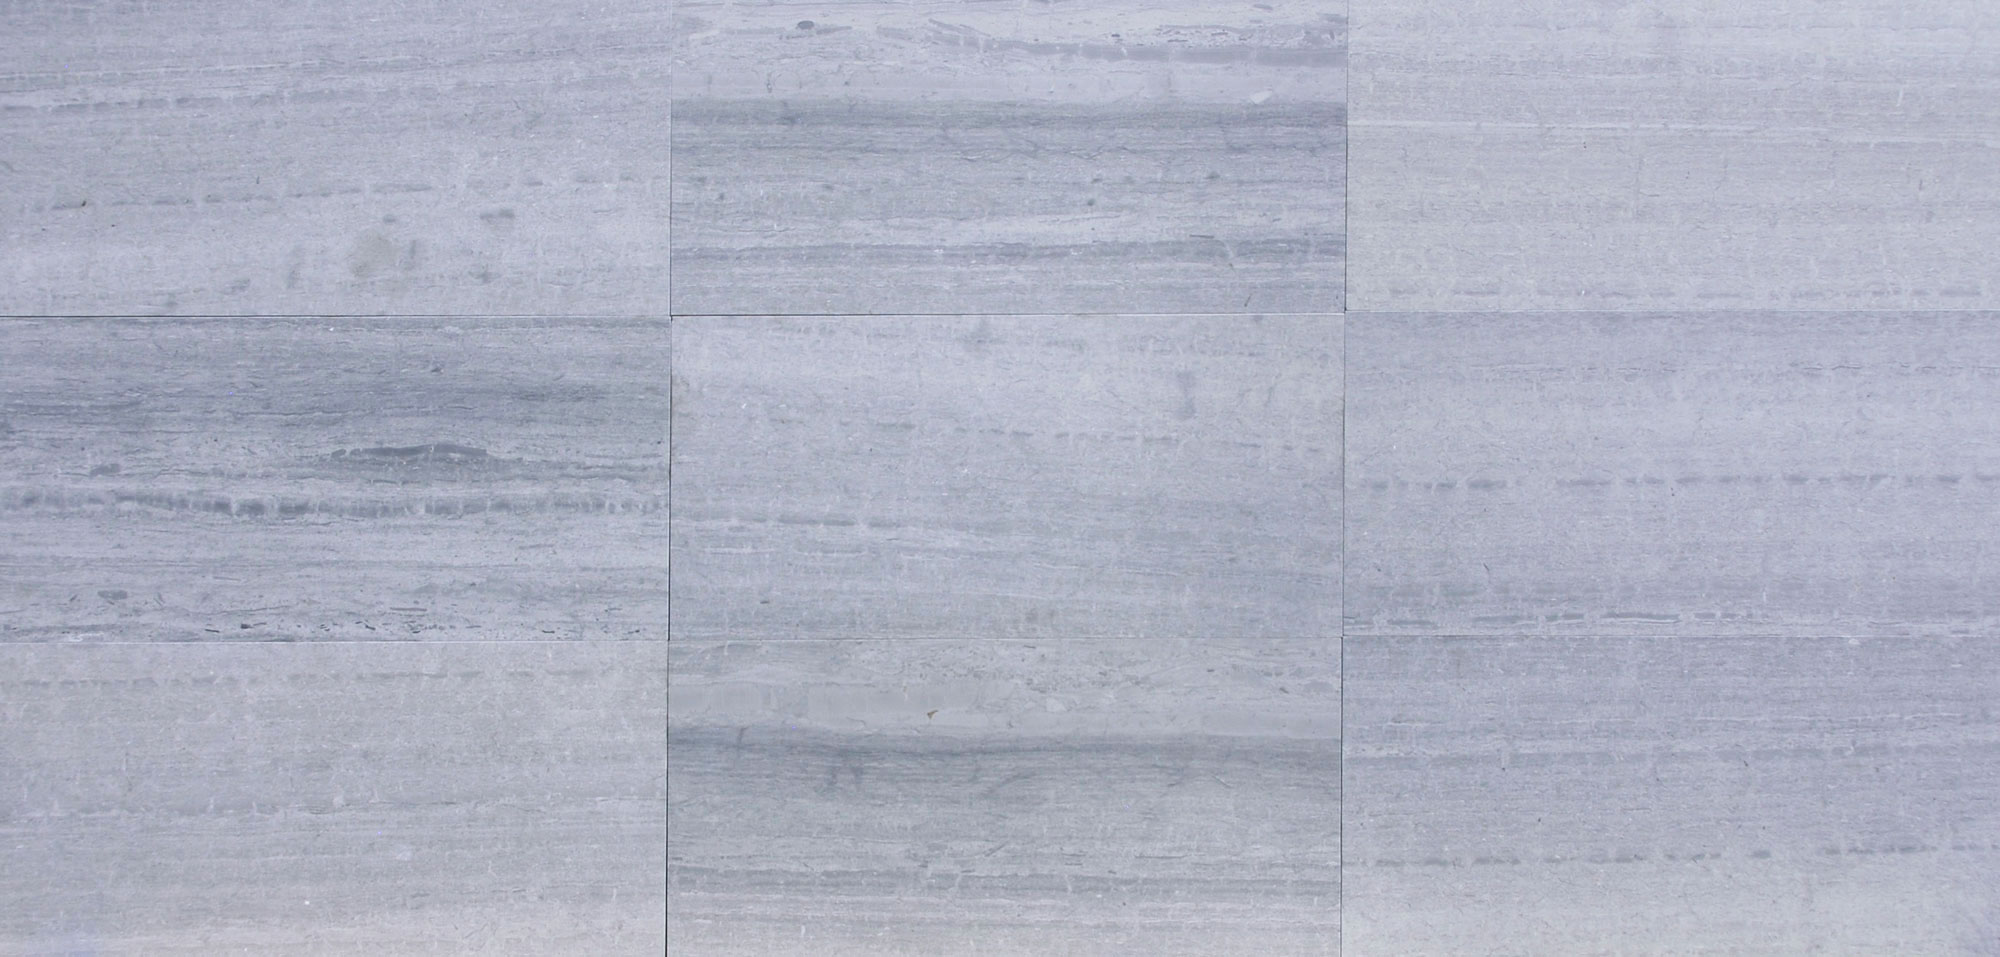 TriStone & Tile – Leader in high-end, imported stone.